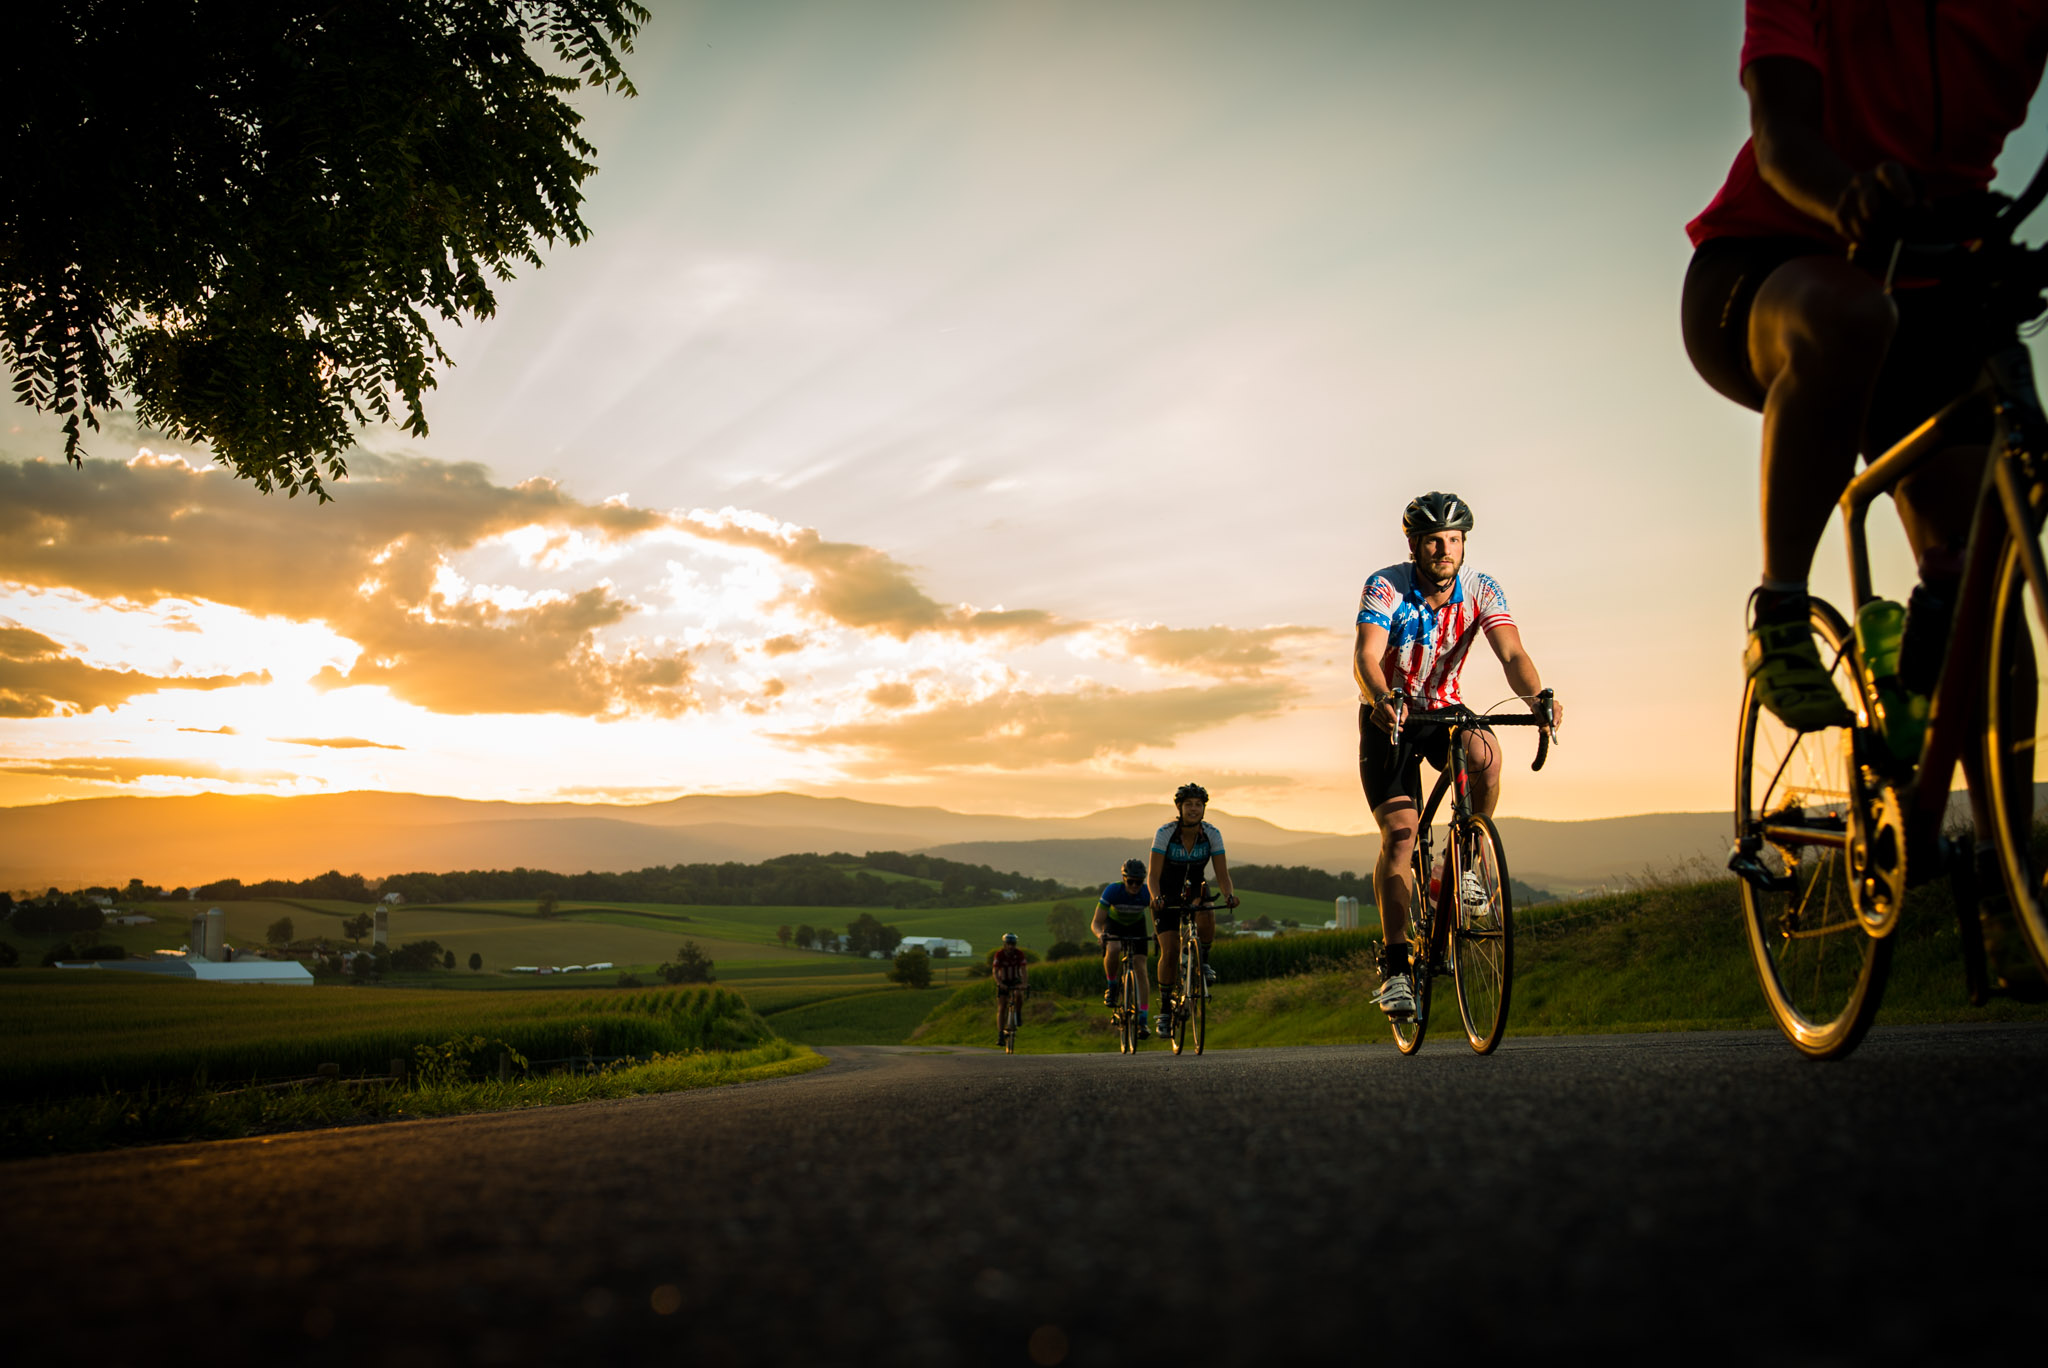 Shenandoah+Valley+Road+Biking-1001.jpg